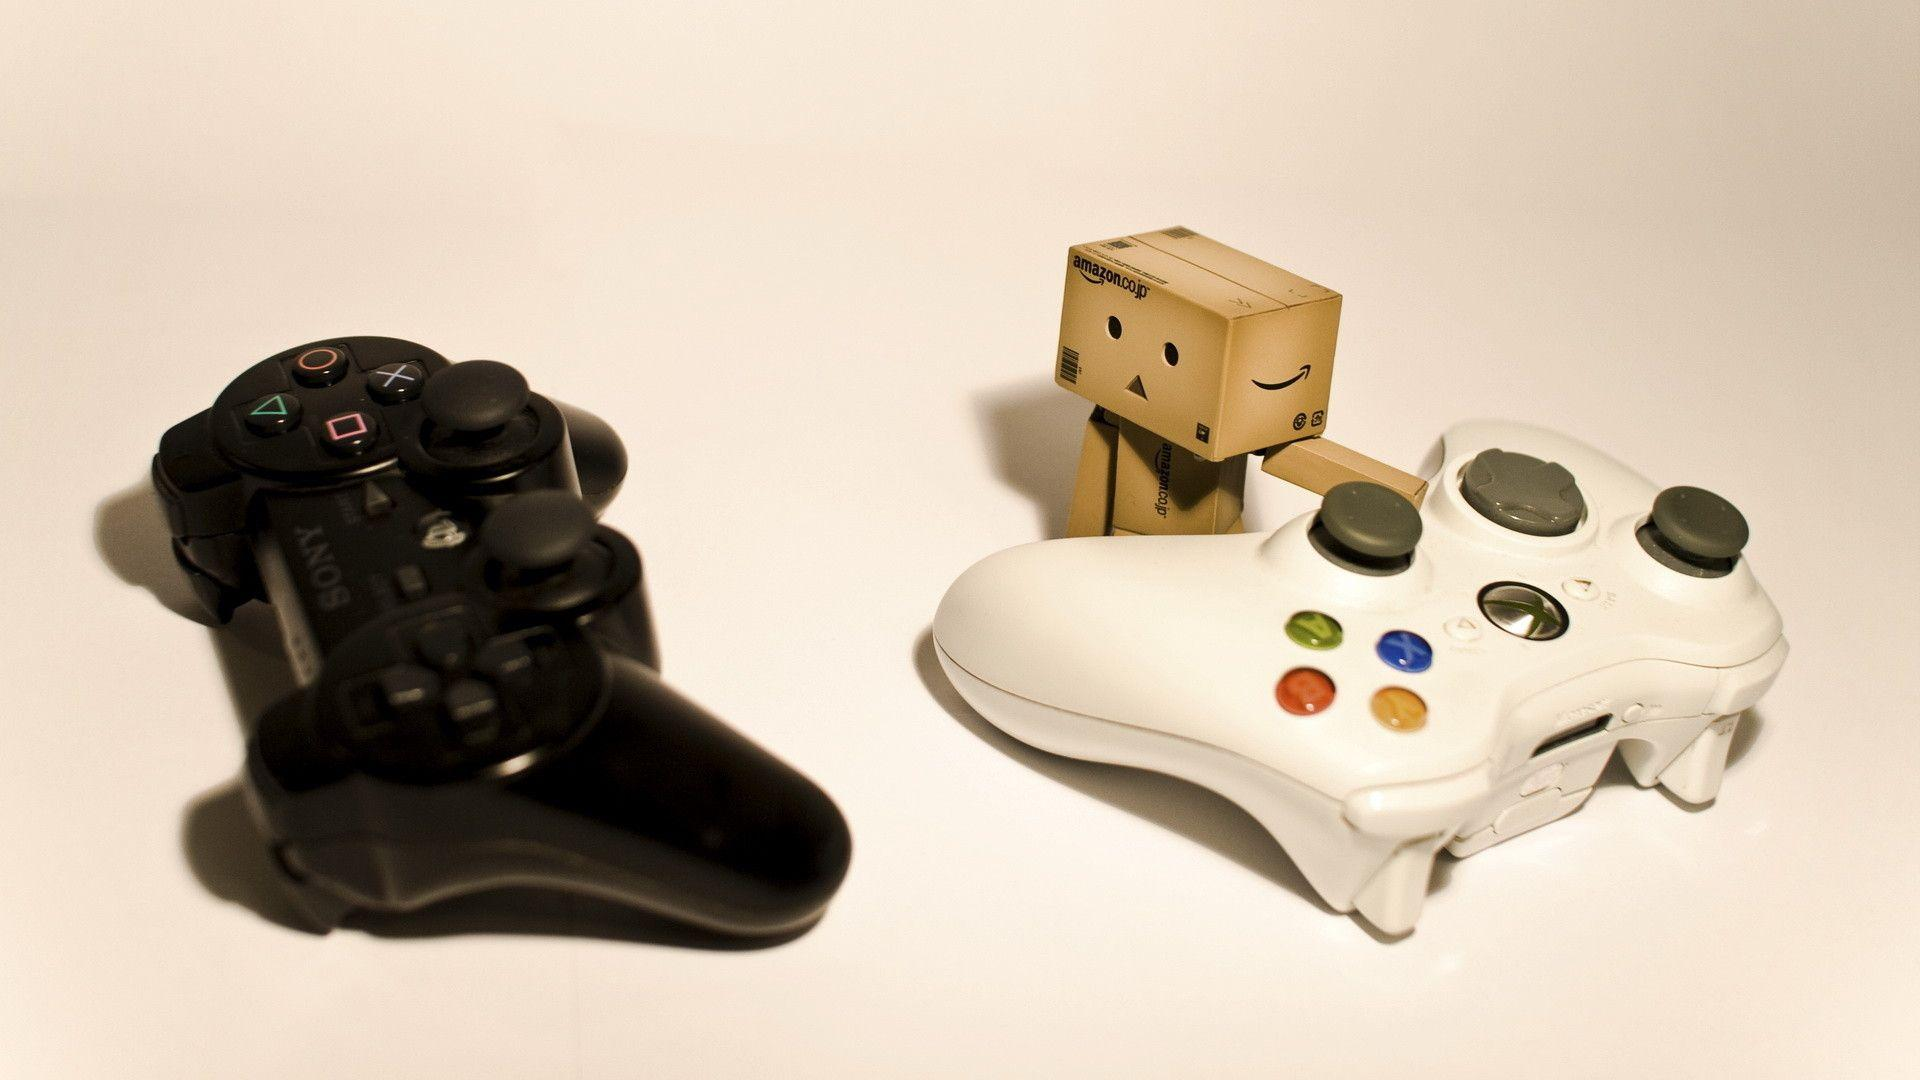 Download wallpapers dambo, Cardboard Robot, xbox 360, playstation 3